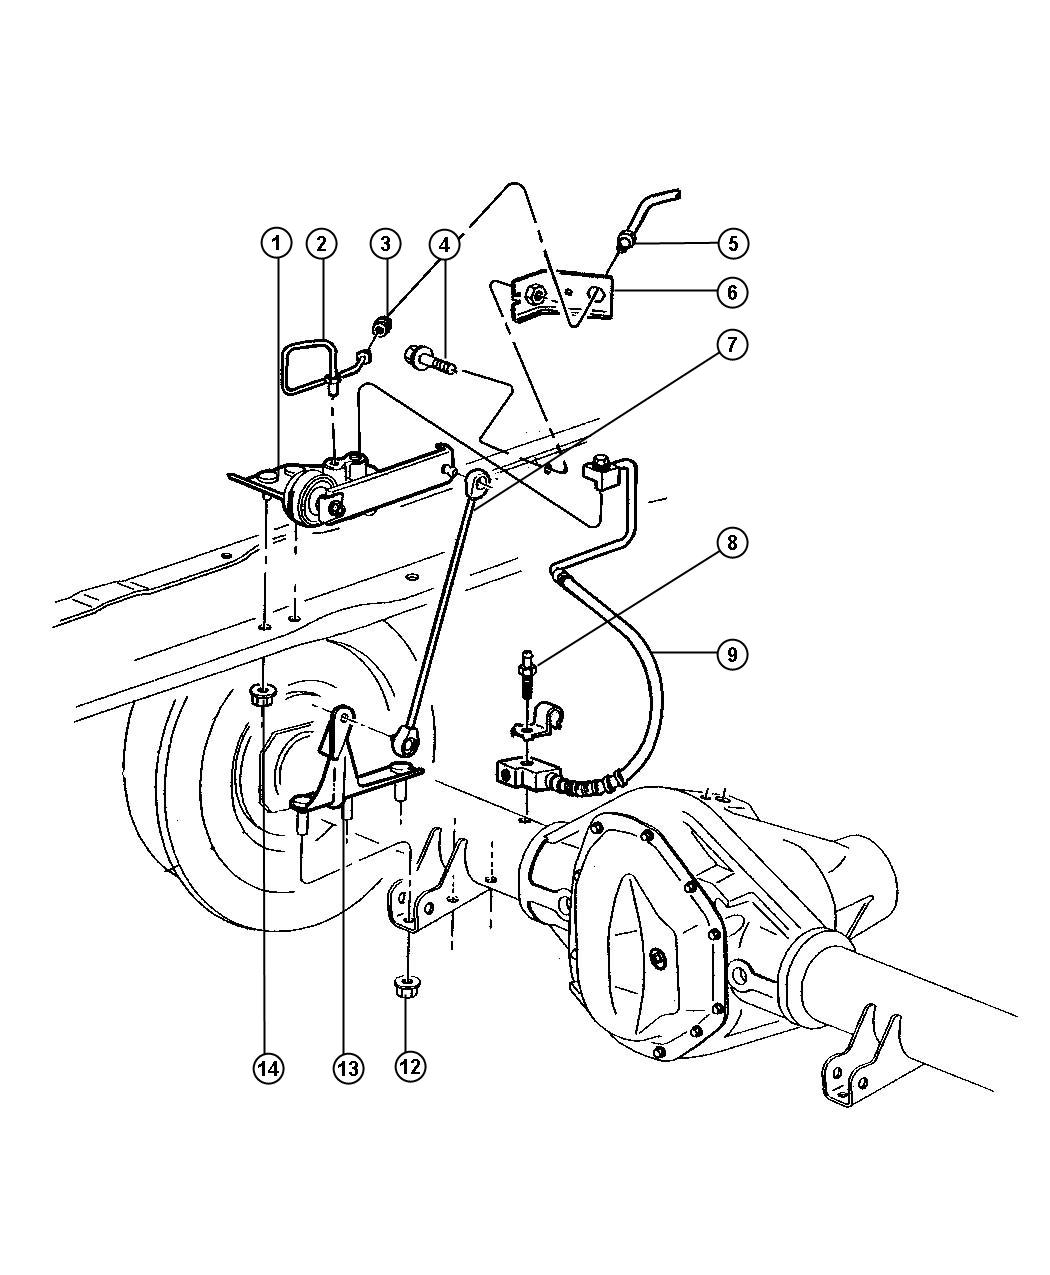 dodge ram 2500 rear height sensing system with z7b suspension